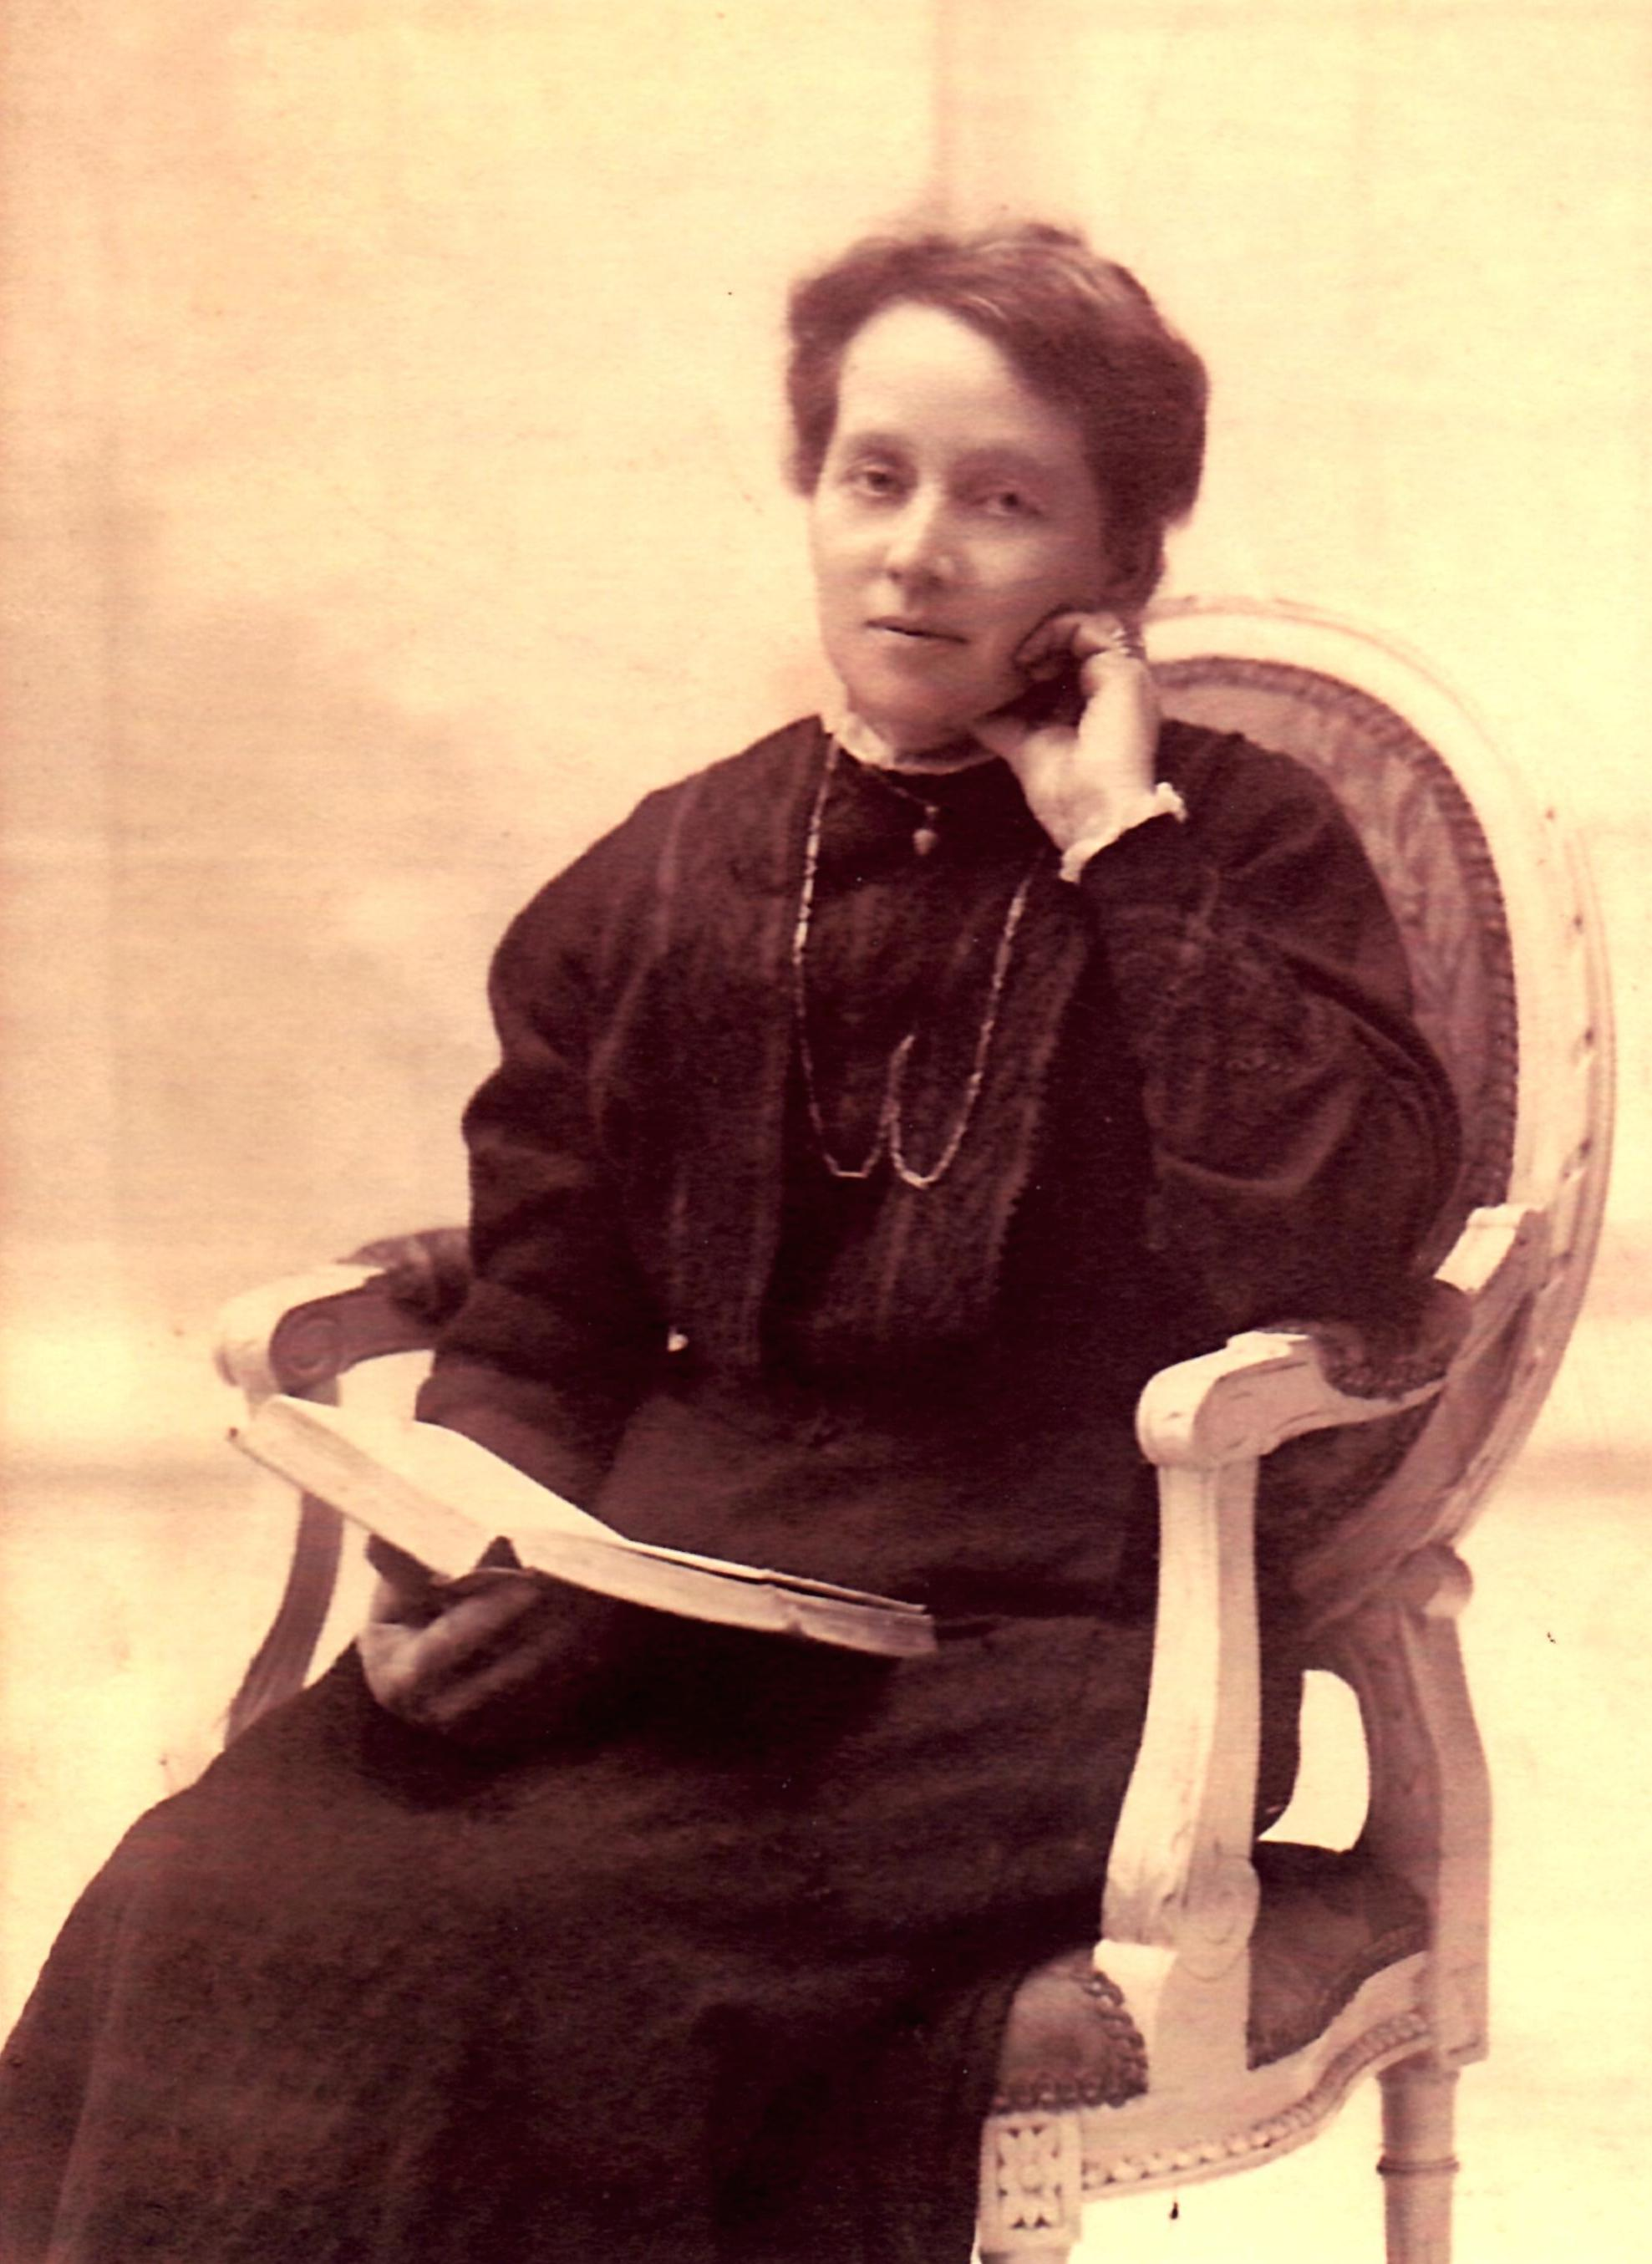 My great great grandma Emma in a late Victorian studio portrait, showing her great taste in jewellery. Definitive proof that traits, talents and obsessions must be genetic!